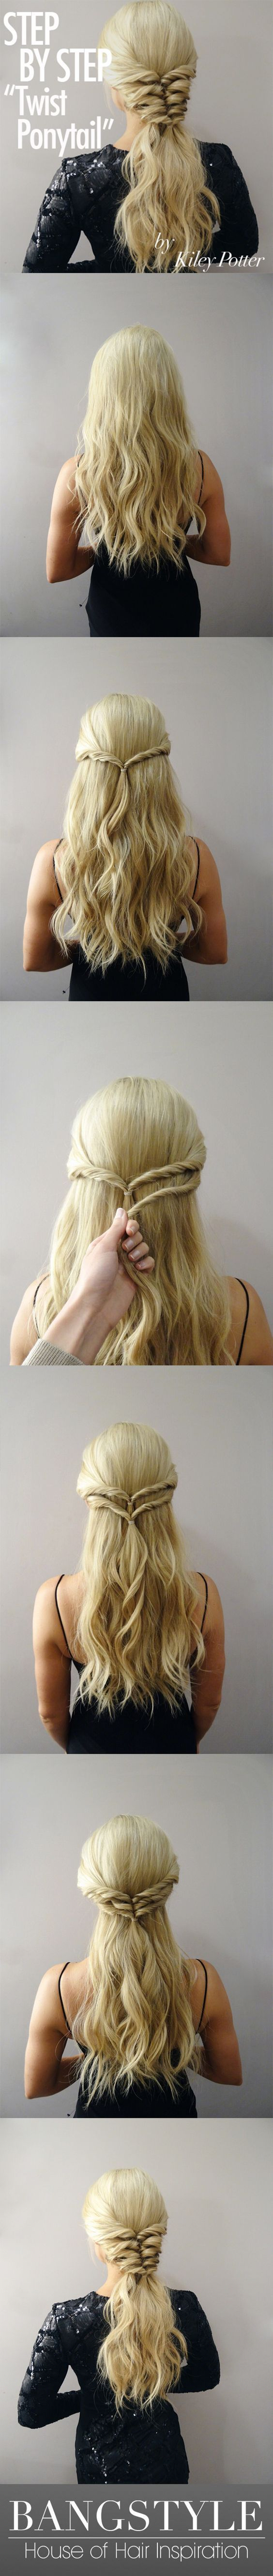 20 Gorgeous Braided Hairstyles For Long Hair - Trend To Wear http://www.dezdemon-hair-styles-hair-cuts.top/hair-and-beauty/20-gorgeous-braided-hairstyles-for-long-hair-trend-to-wear-2/?utm_content=buffer7be60&utm_medium=social&utm_source=www.pinterest.com&utm_campaign=buffer